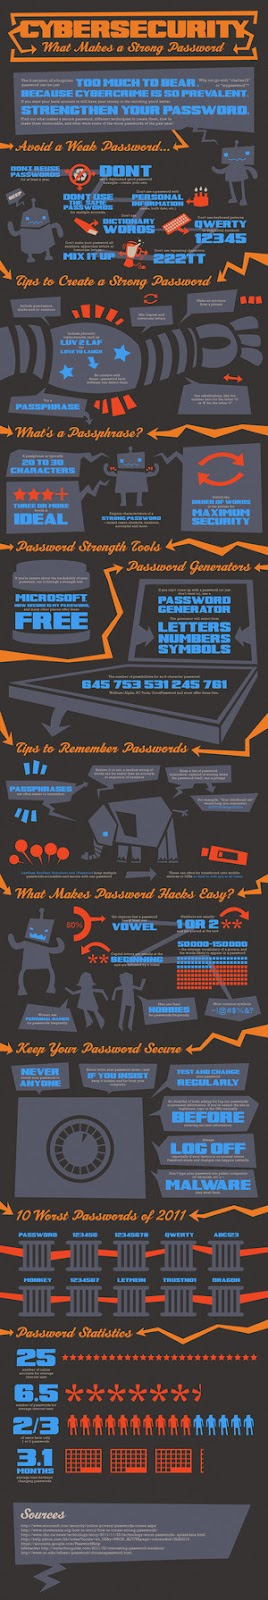 Cyber Security Infographics - Click to Enlarge